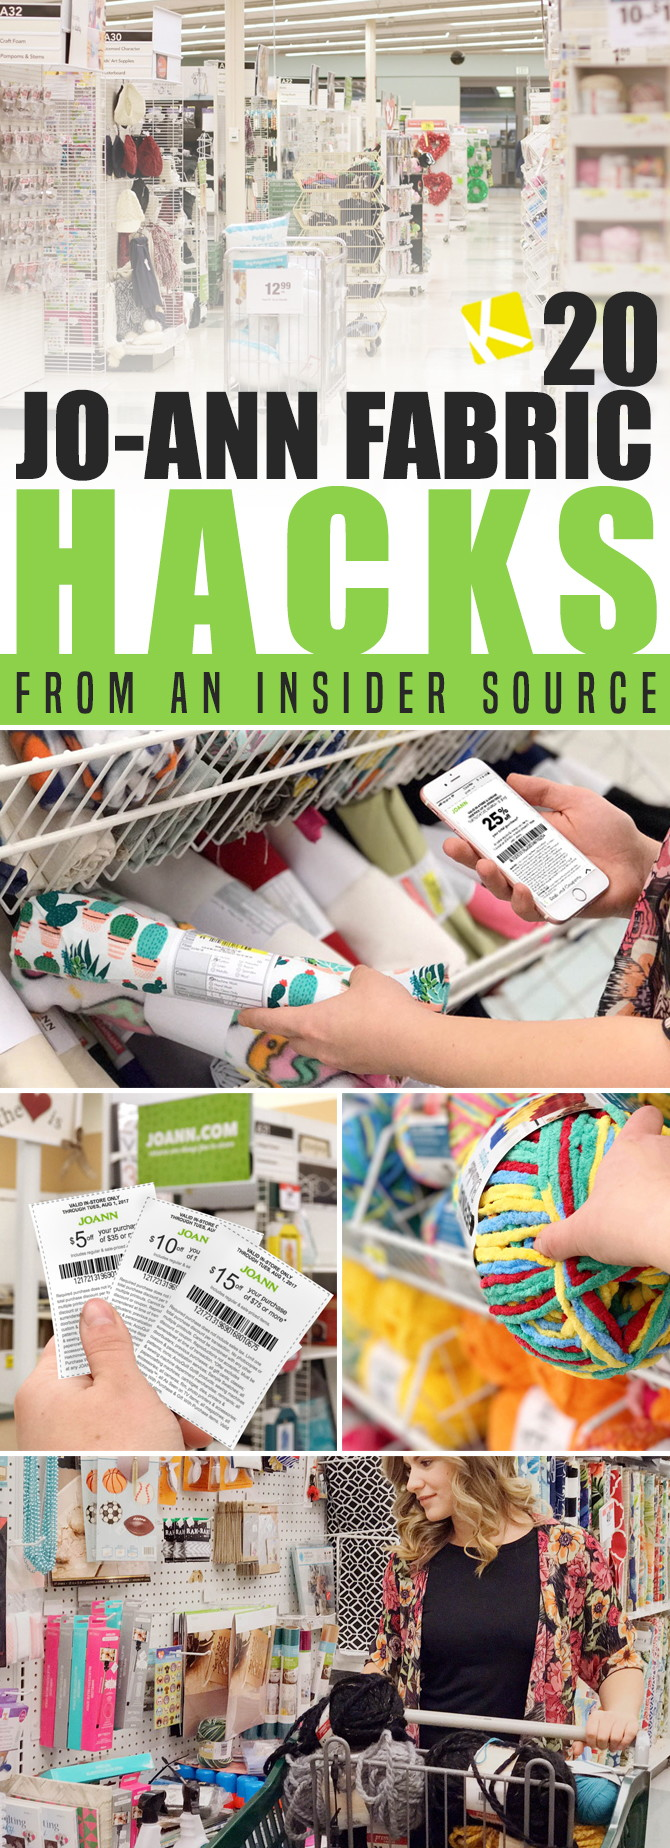 JoAnn Fabric Hacks From An Insider Source The Krazy Coupon Lady - Download free invoice template online fabric store coupon